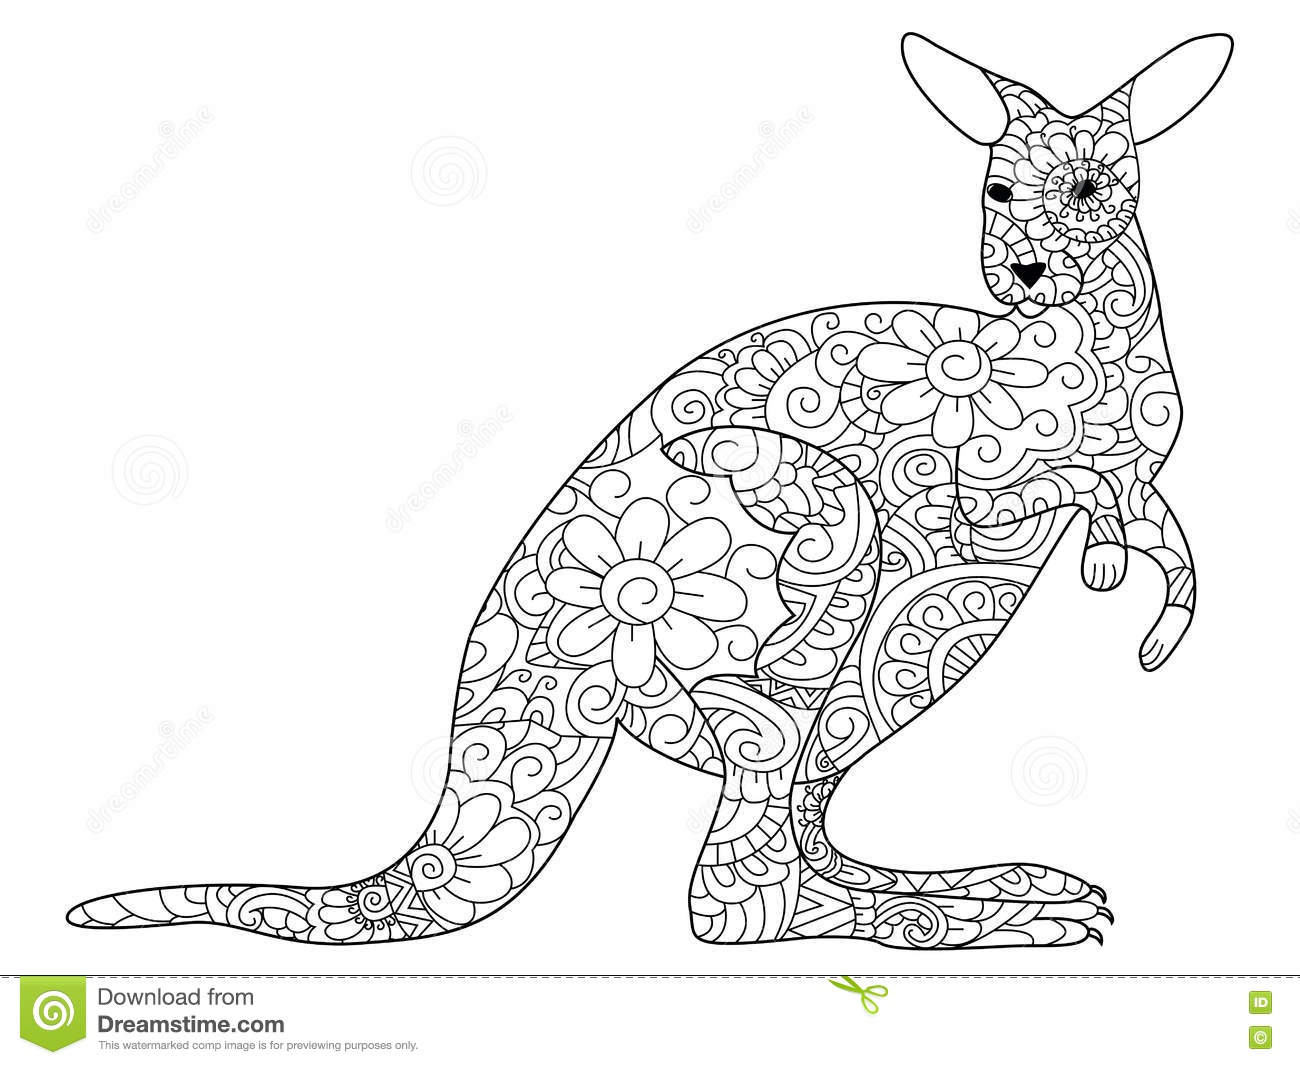 2017 07 31 coloring pages frozen coloring pages frozen 71 comments feed - Printable Coloring Pages Kangaroos Kangaroo Coloring Book Vector For Adults